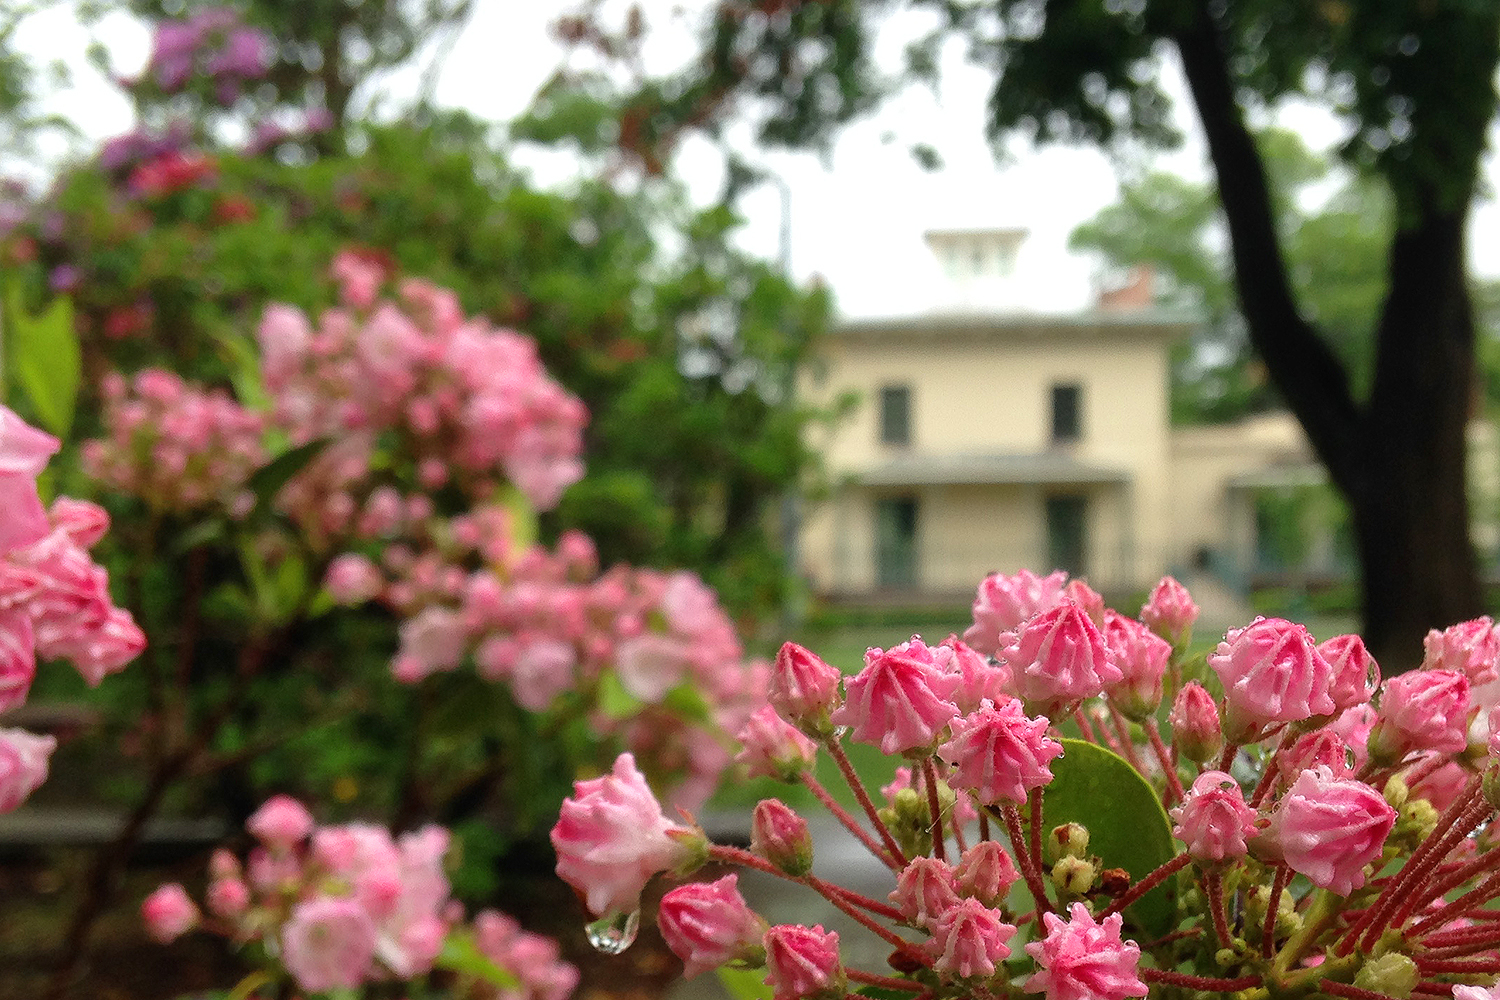 Mountain laurel near the Davison Art Center and Downey House (pictured).